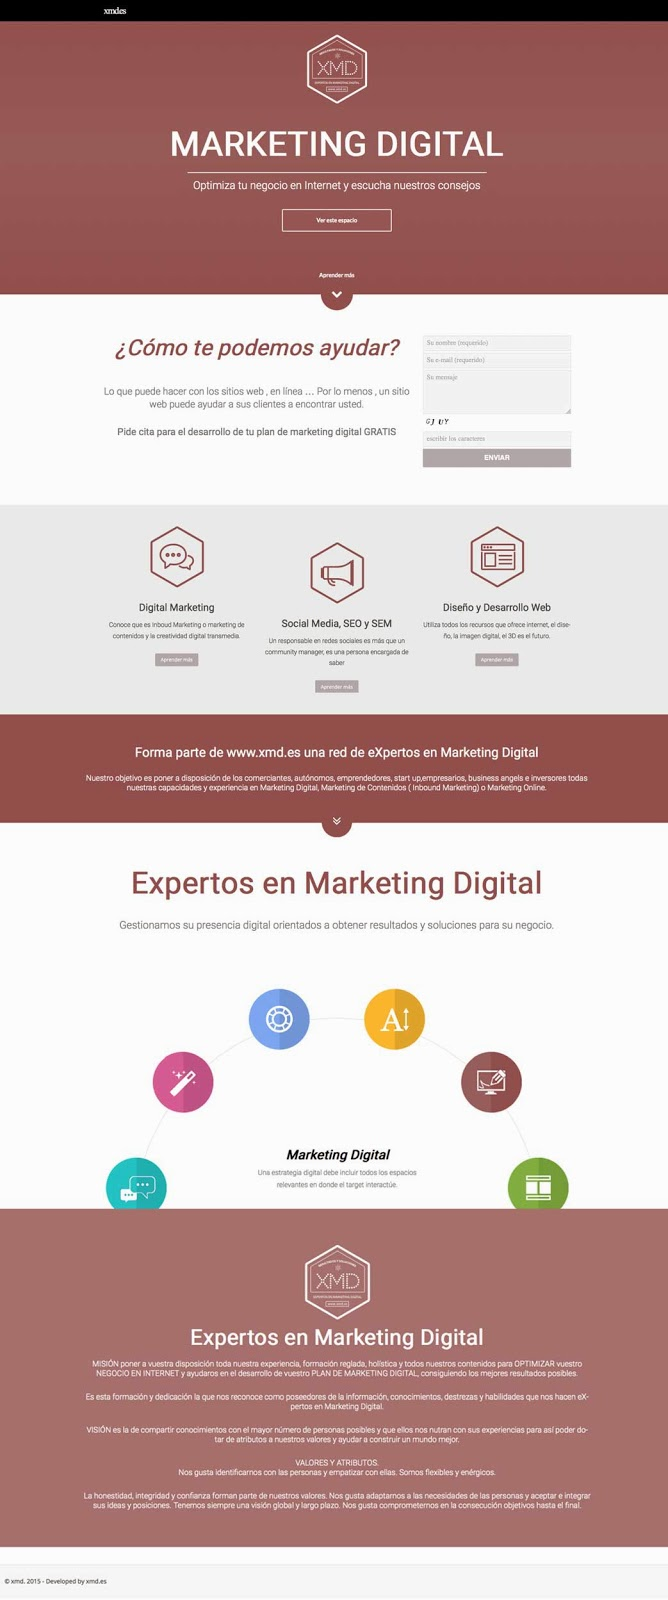 seo marketing and digital marketing experts marbella